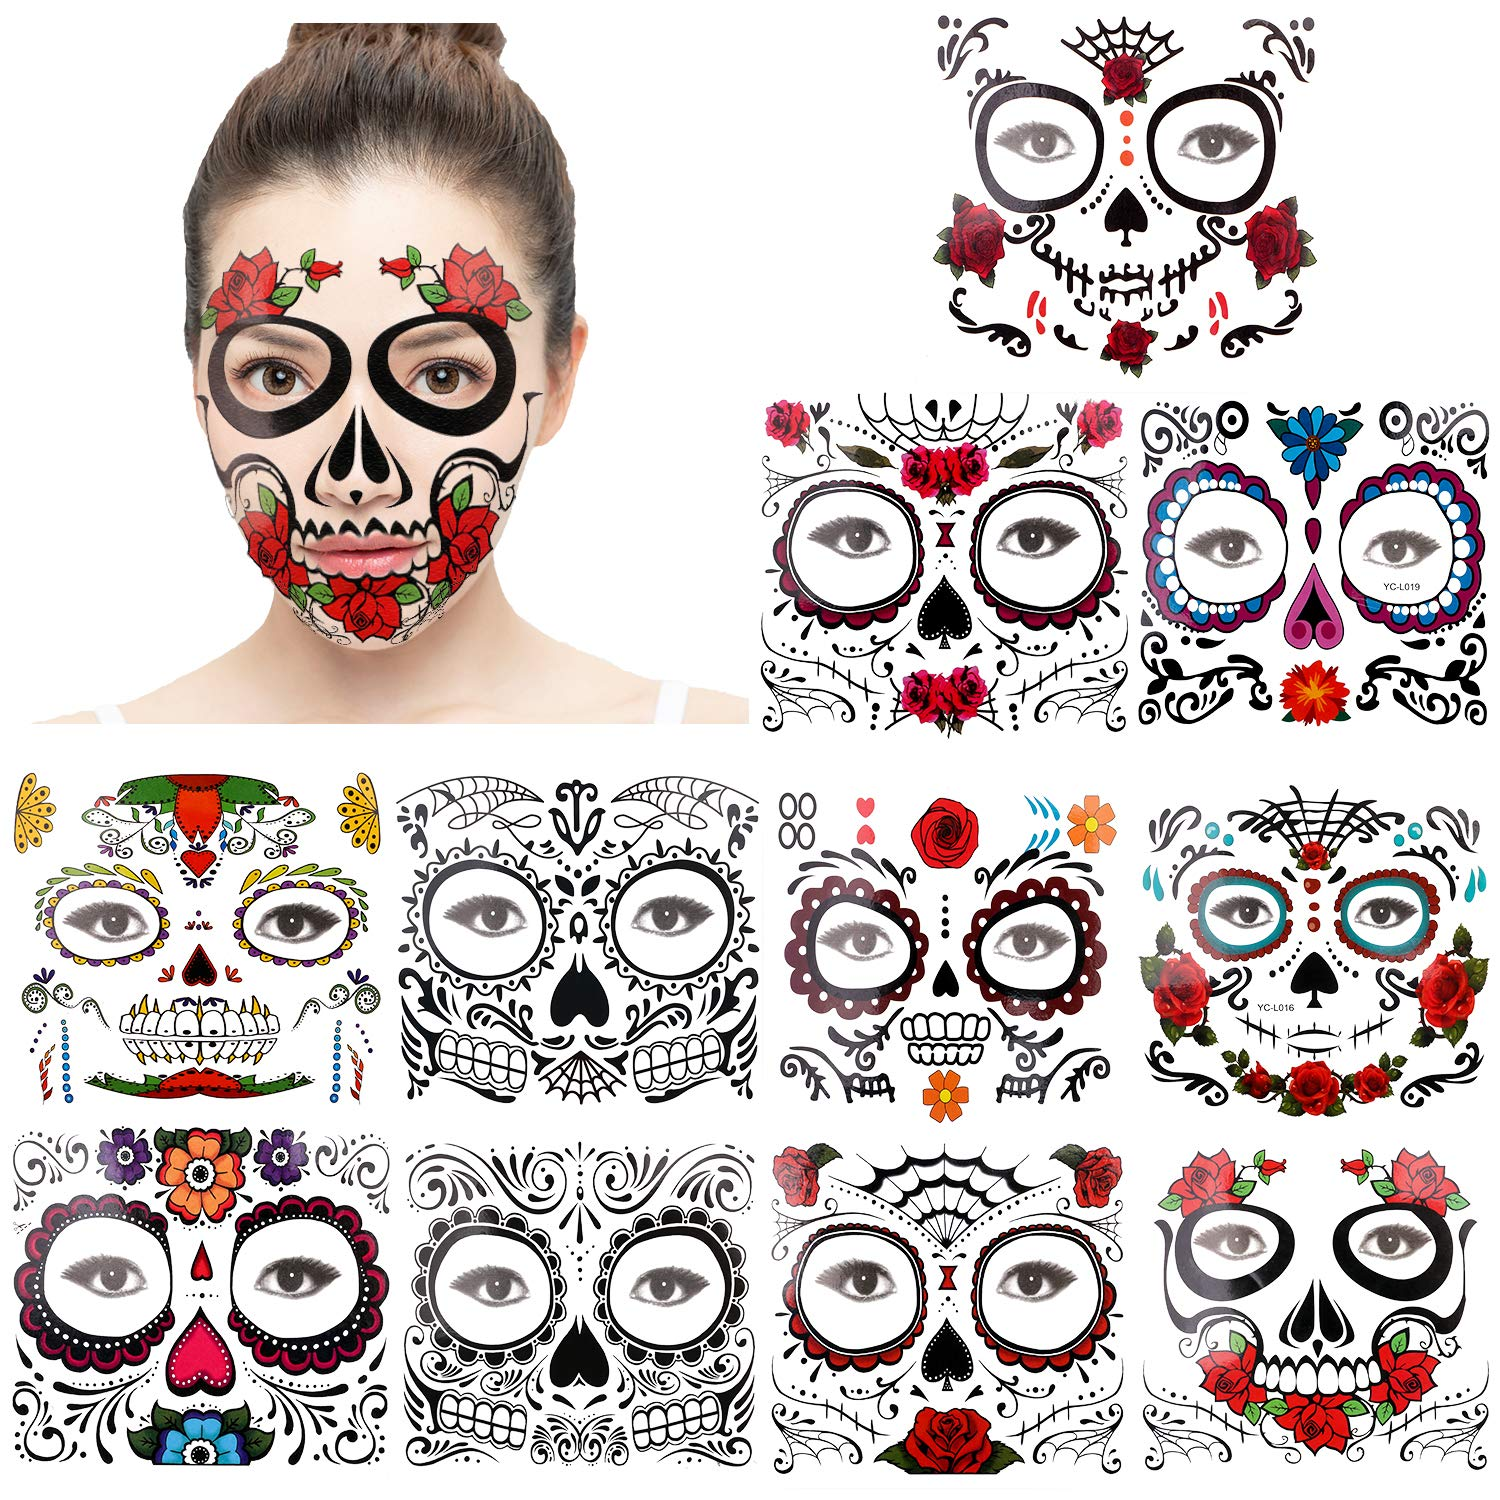 Halloween Face Tattoos (11 Pack), Howaf Day of the Dead Sugar Skull Floral Red Roses Black Skeleton Web Full Face Mask Tattoo for Women Men Adult Kids Masquerade Halloween Party Favor Supplies